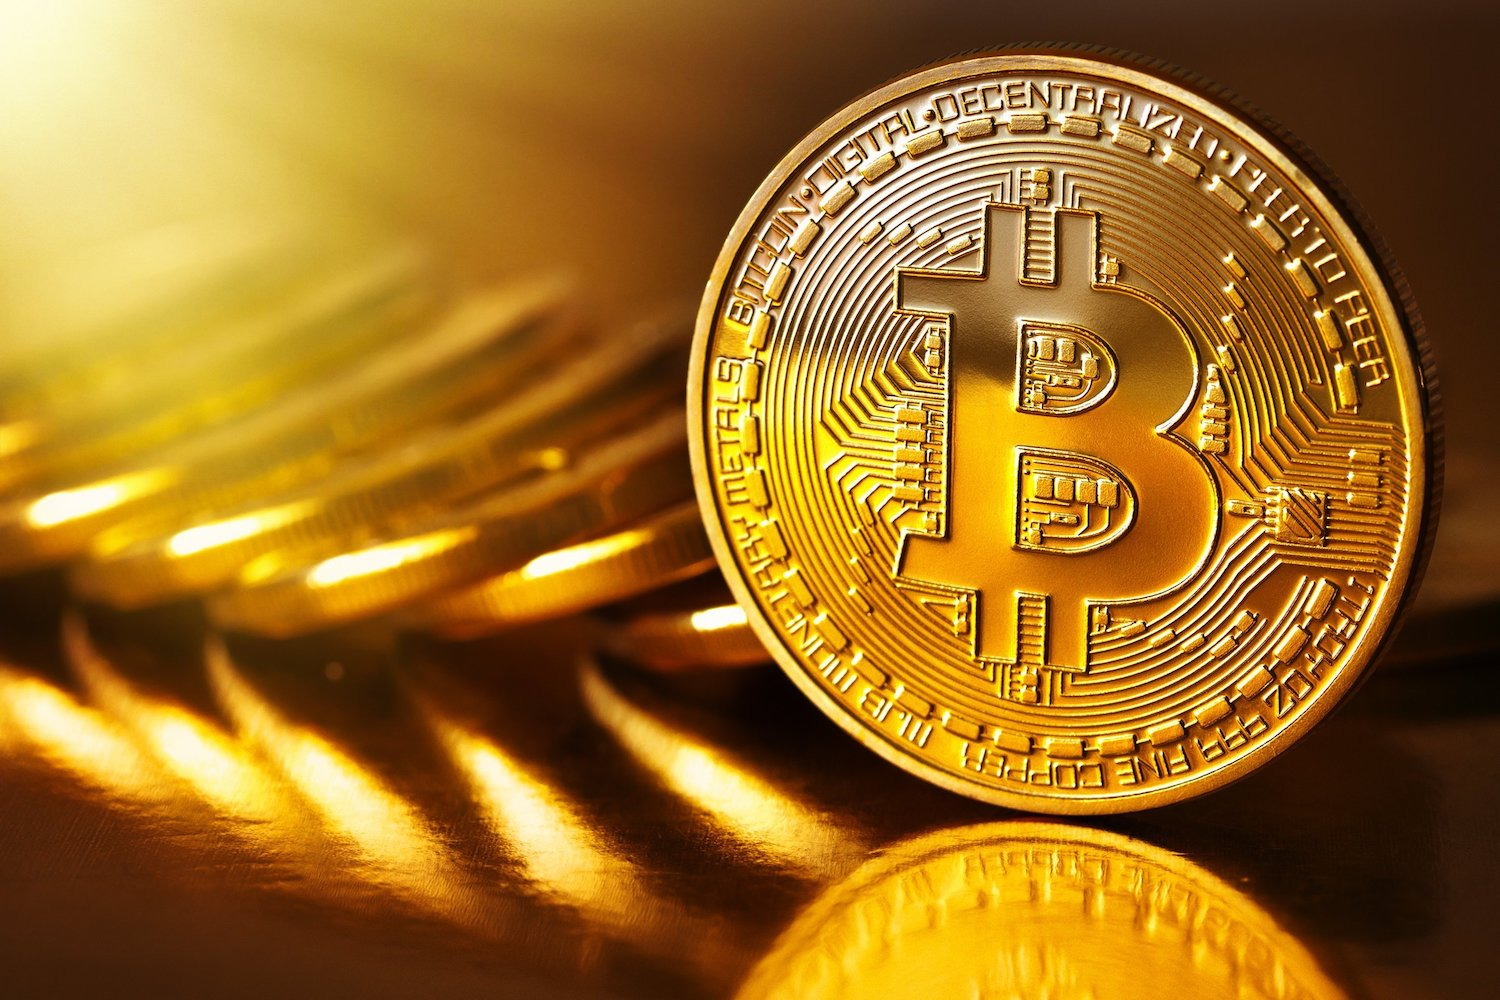 Bitcoin has now been above $10K for a whole year